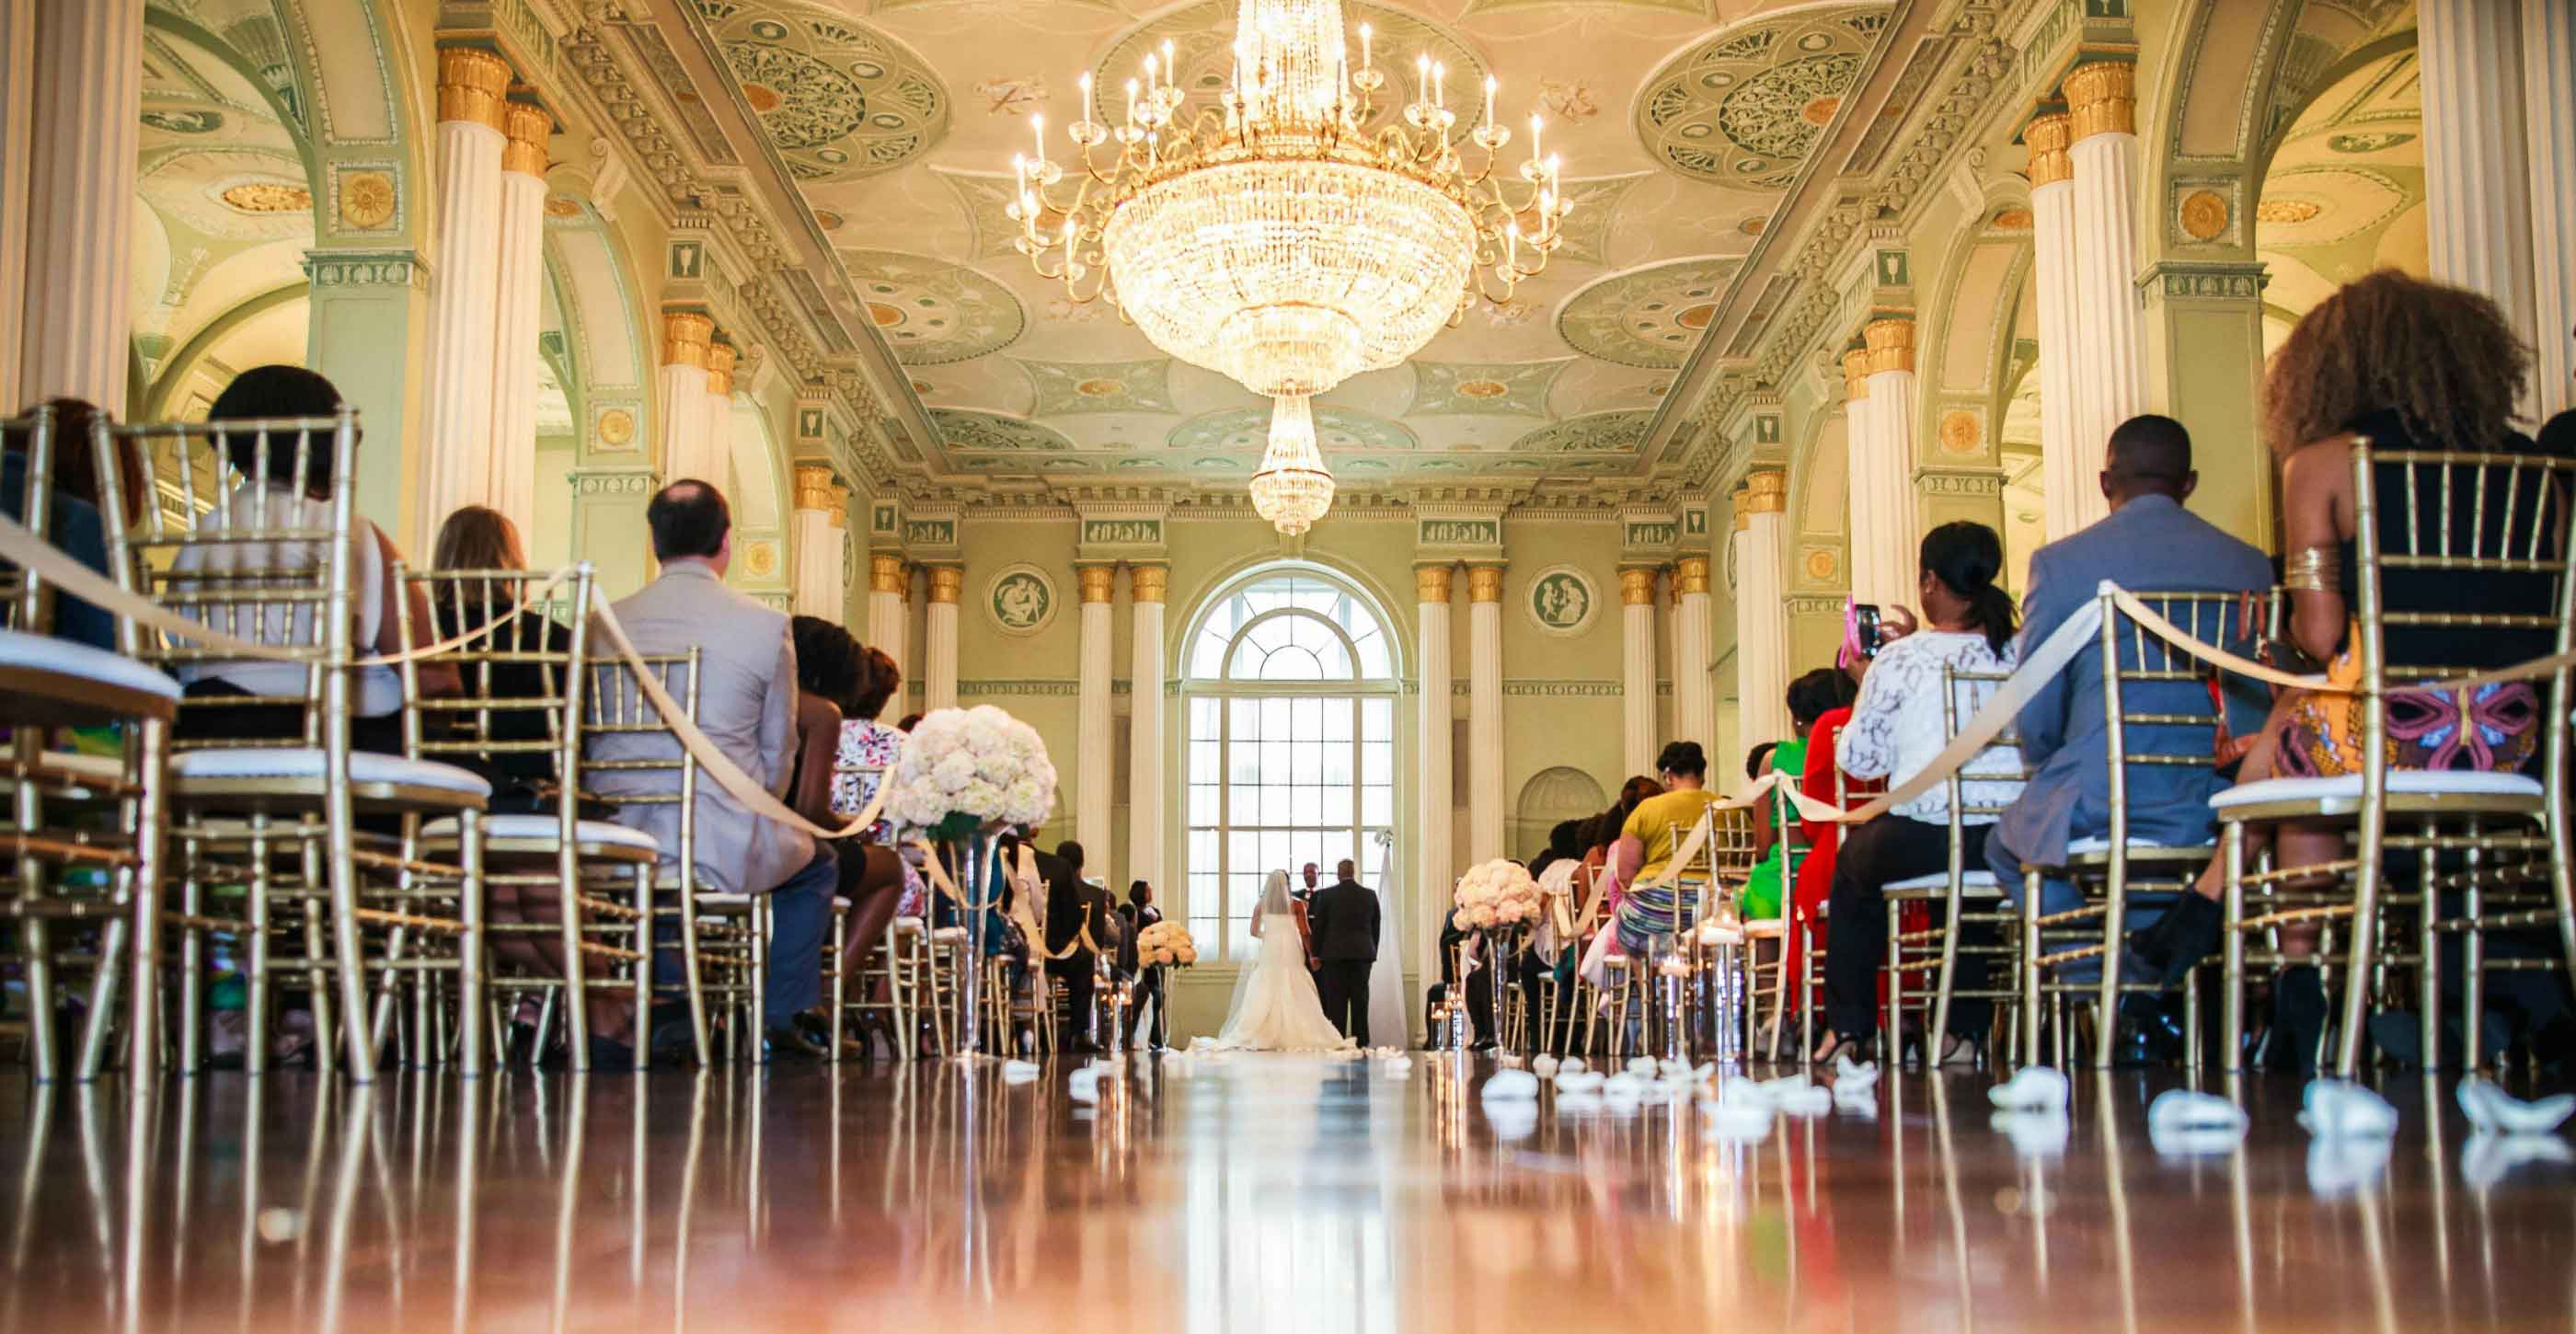 Atlanta Biltmore wedding ceremony by Gary Lun Photography